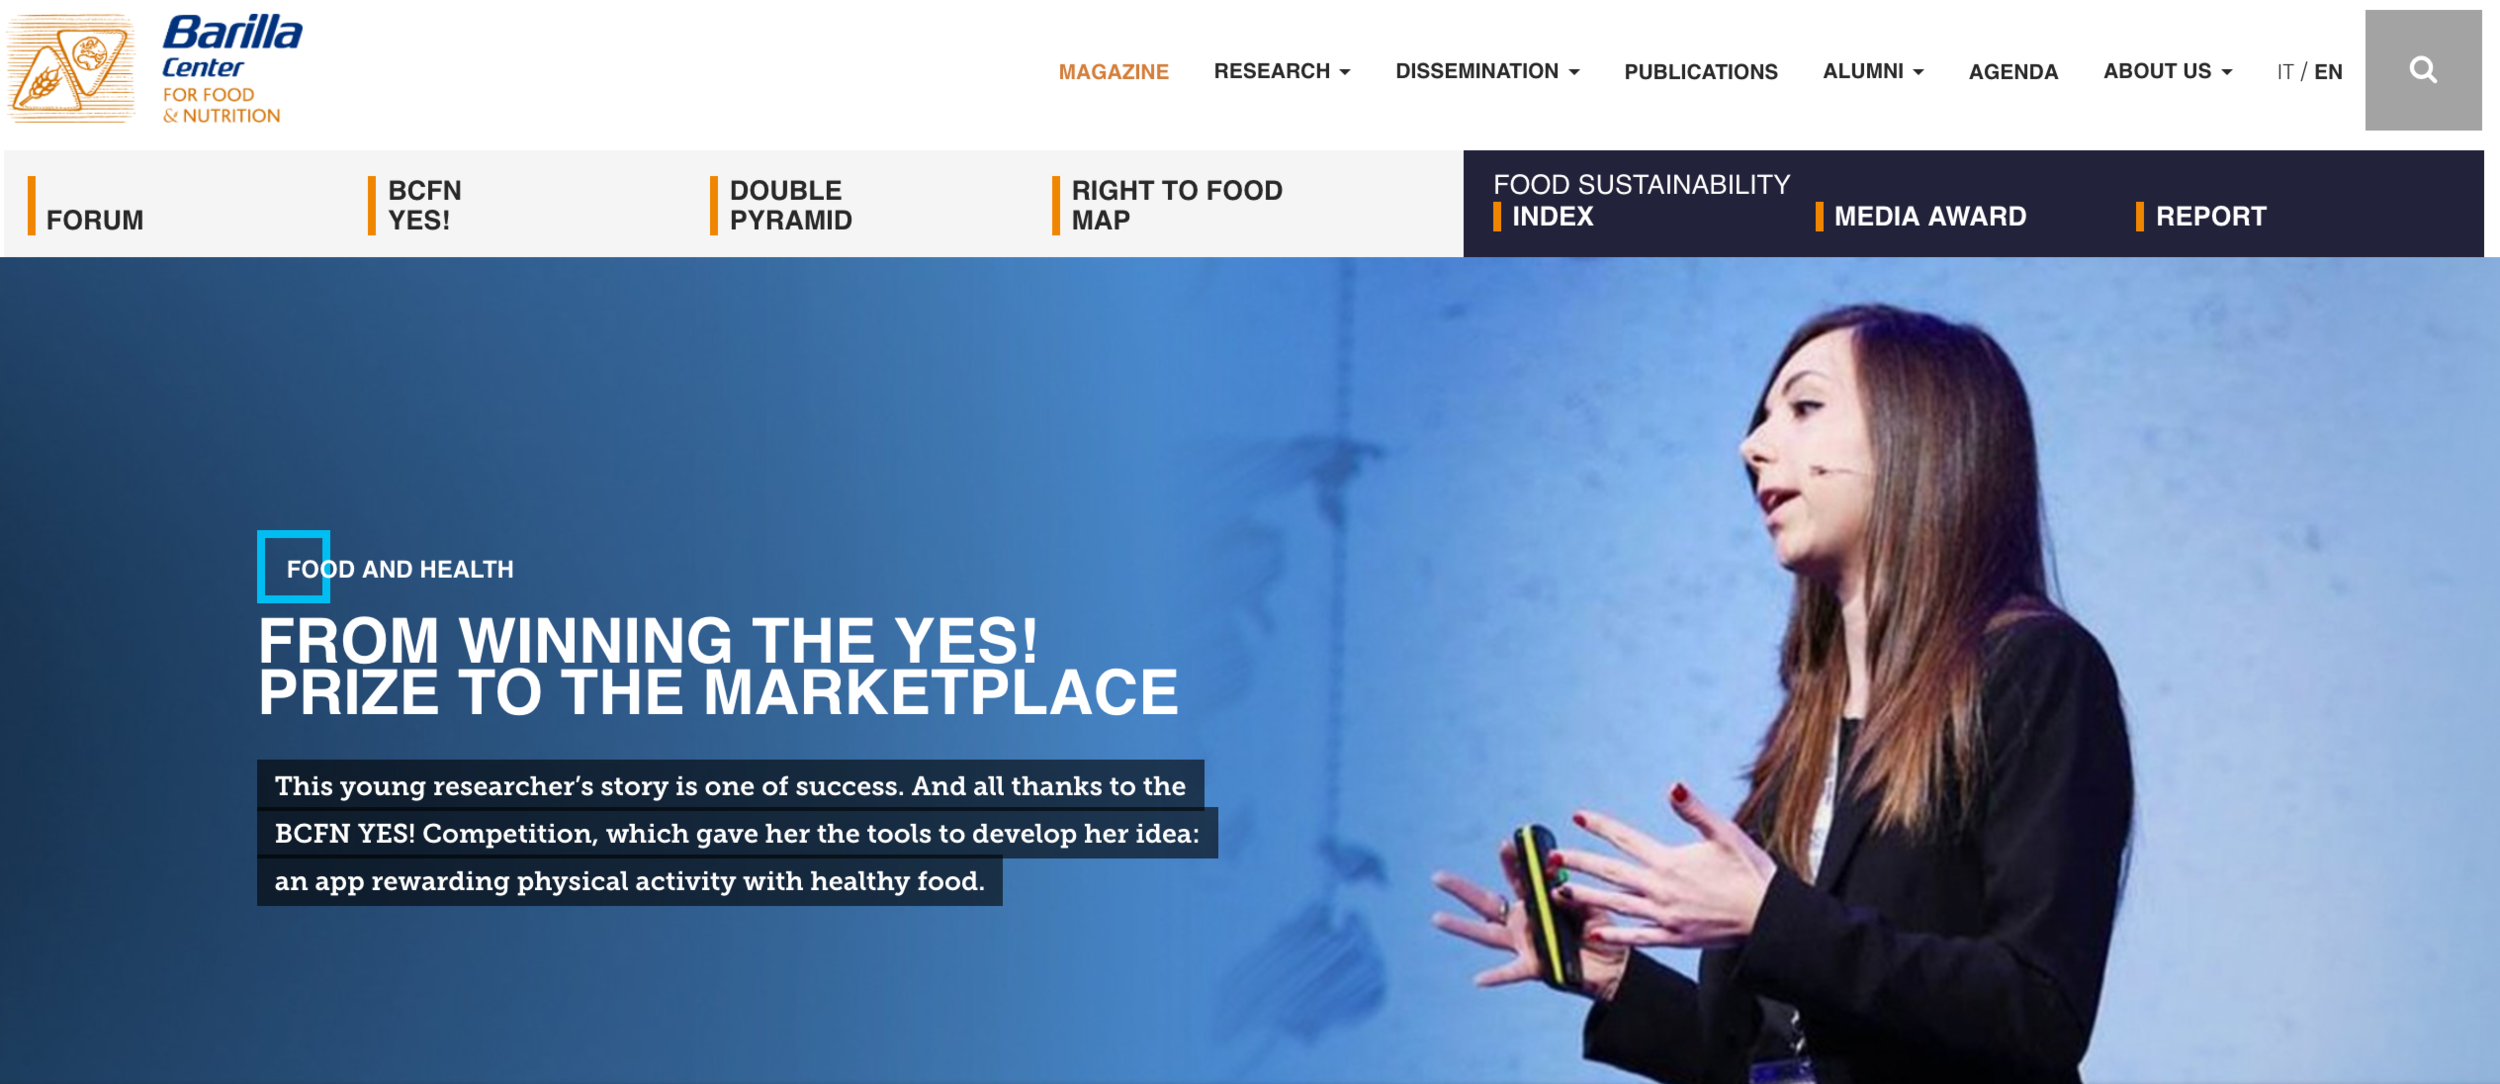 from winning the yes! prize to the market place - Barilla Center Food Nutrition, September 2016